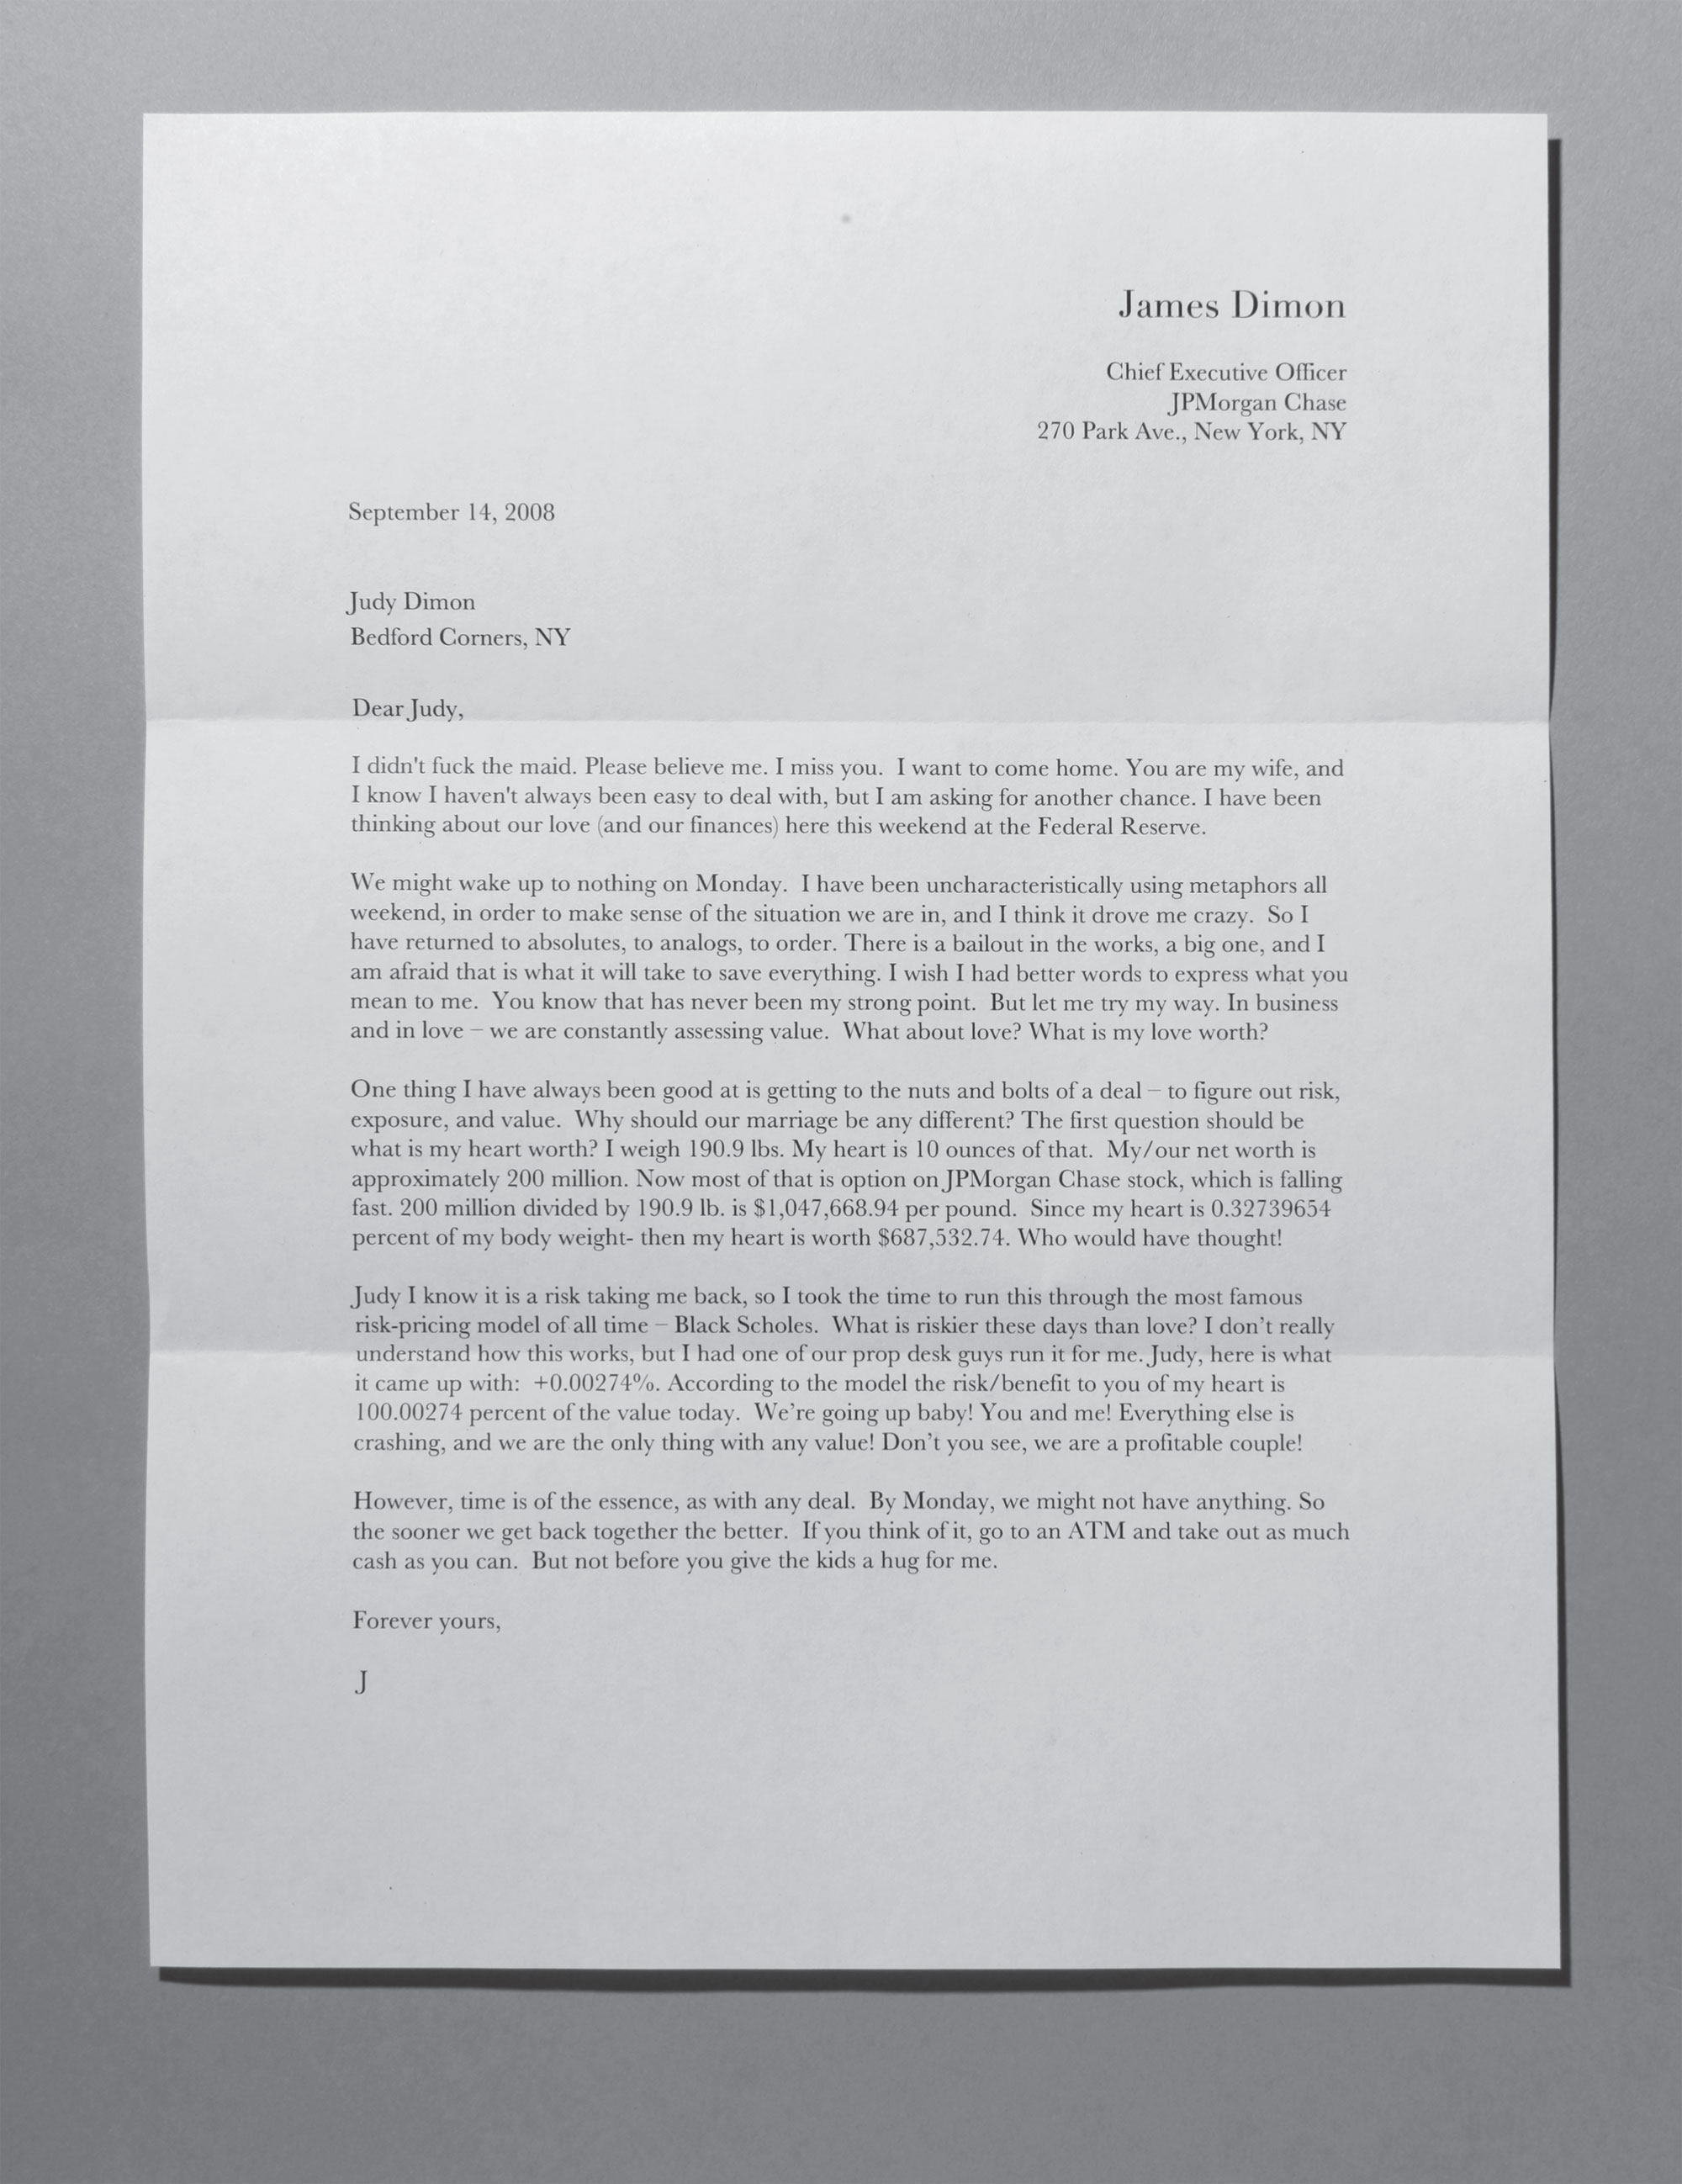 Letter to Judy